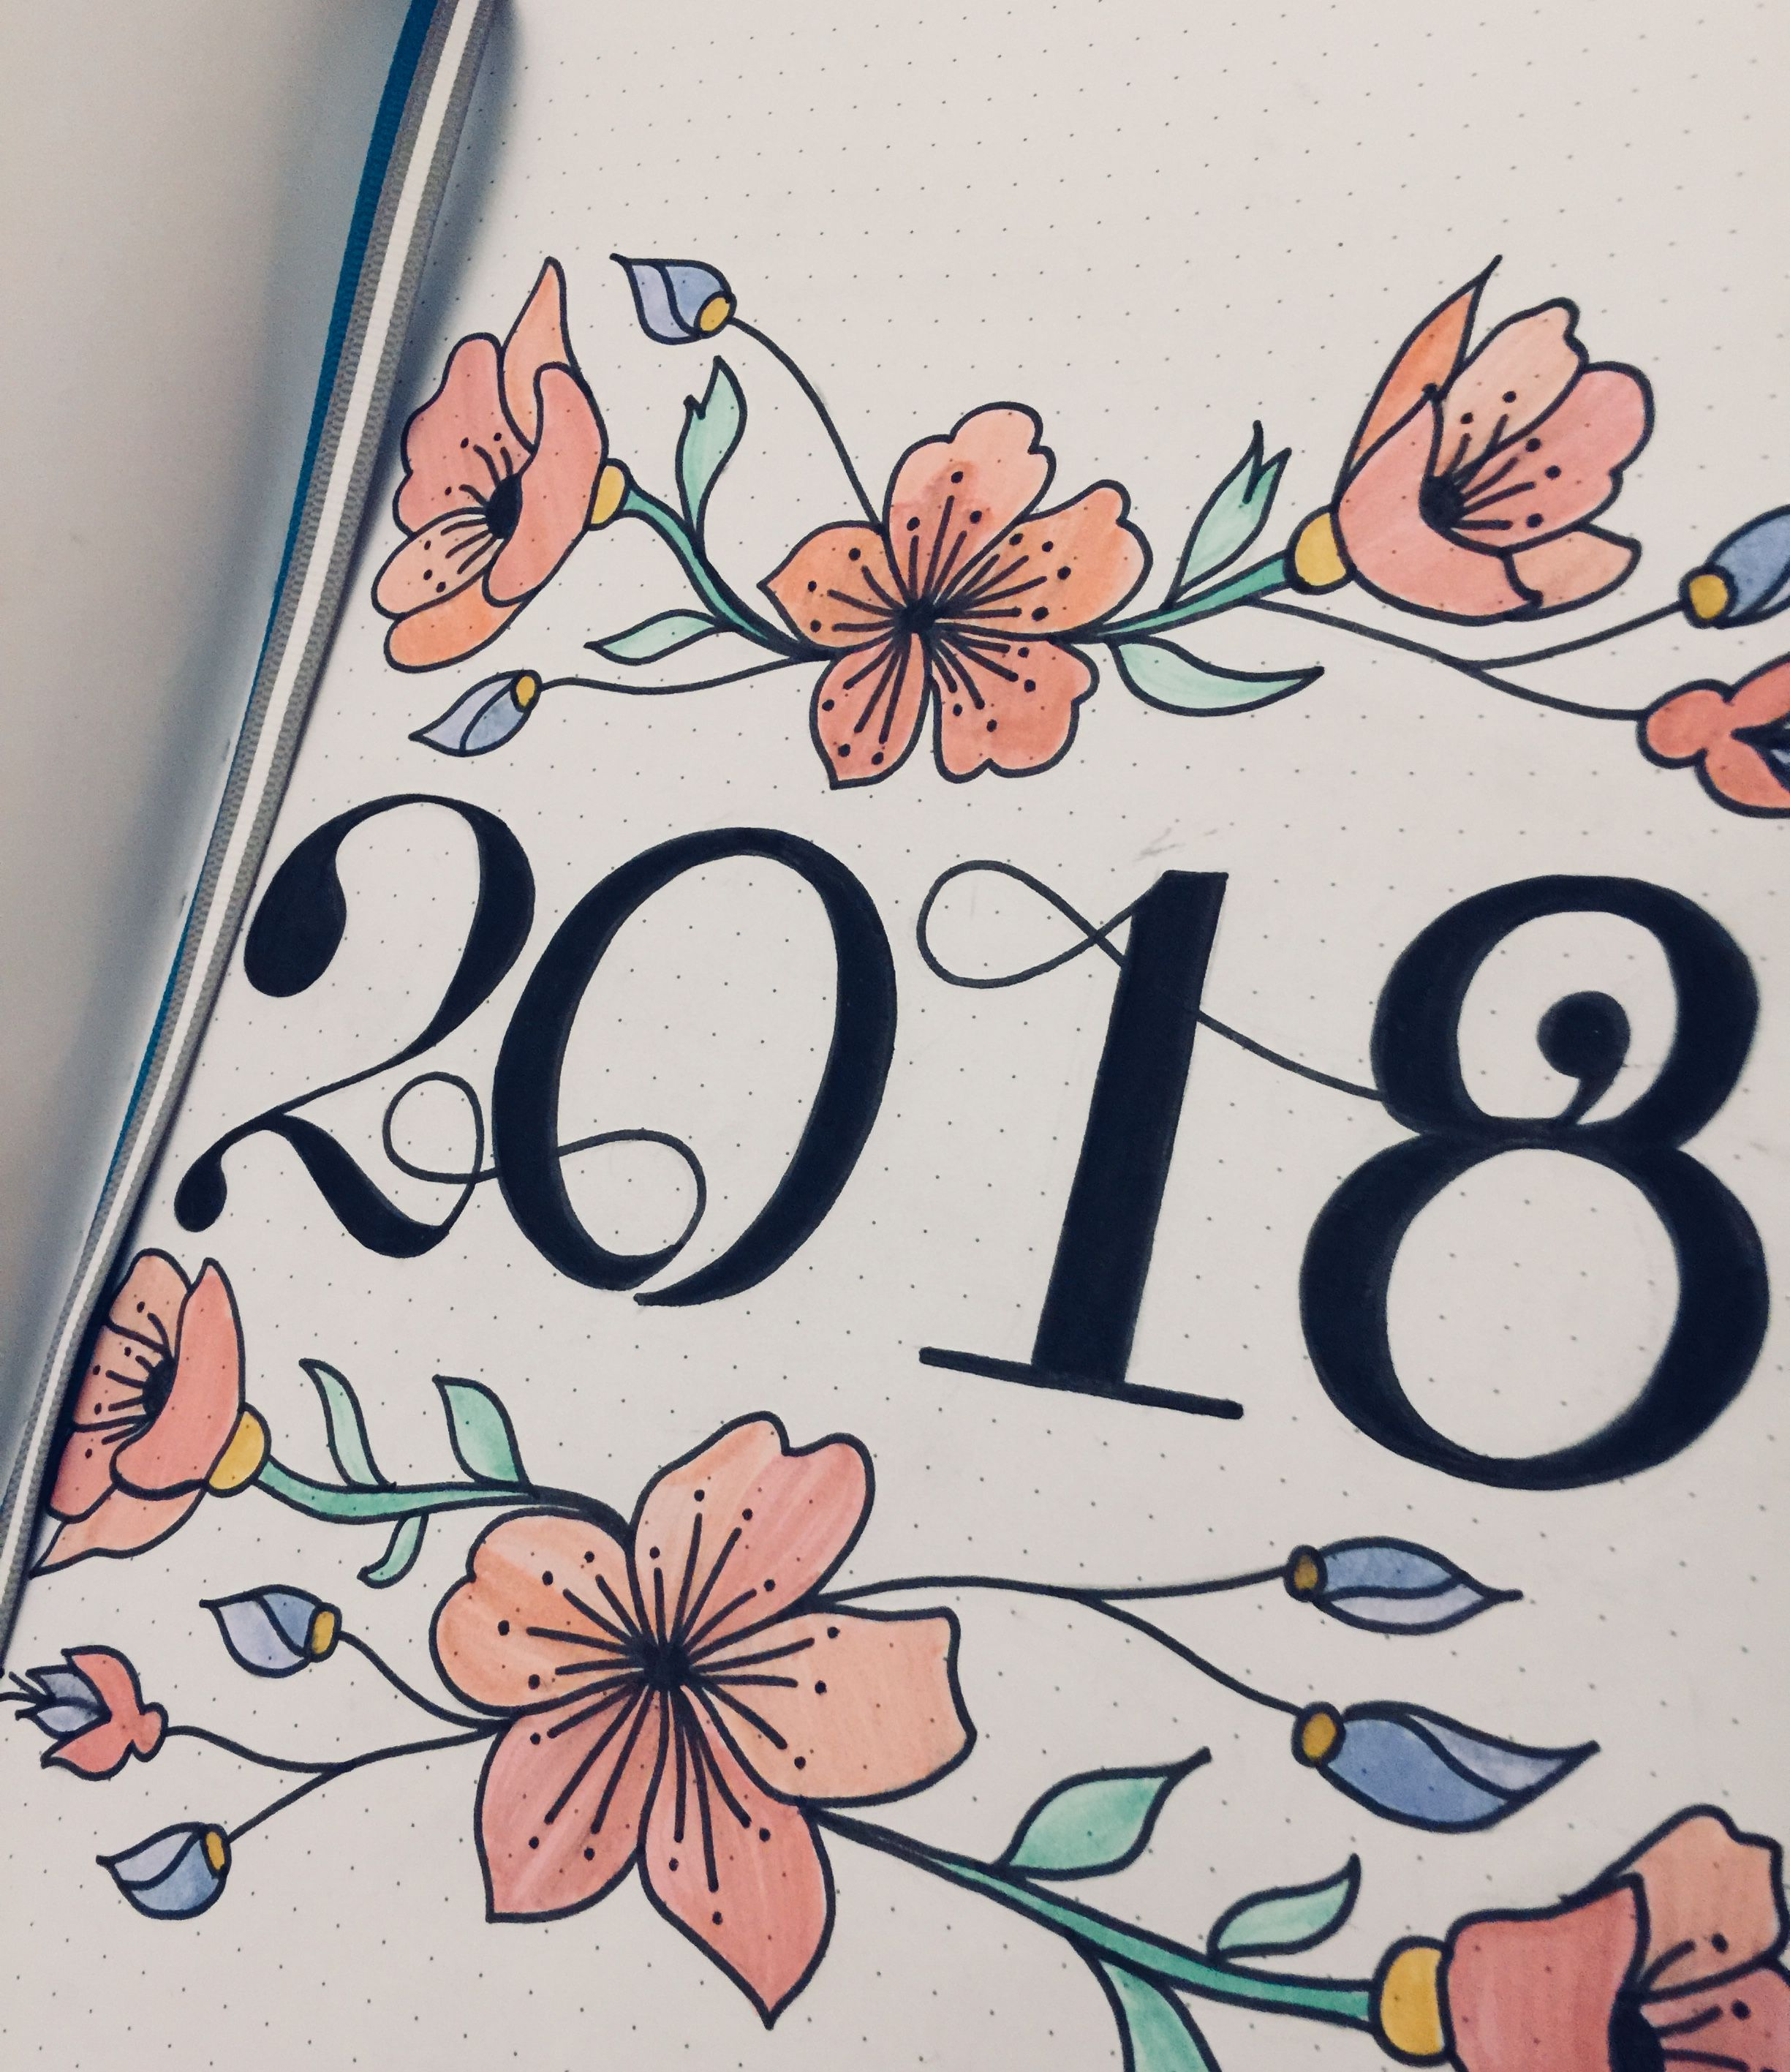 bullet journal, 2018 cover page, floral design, calligraphy numbers